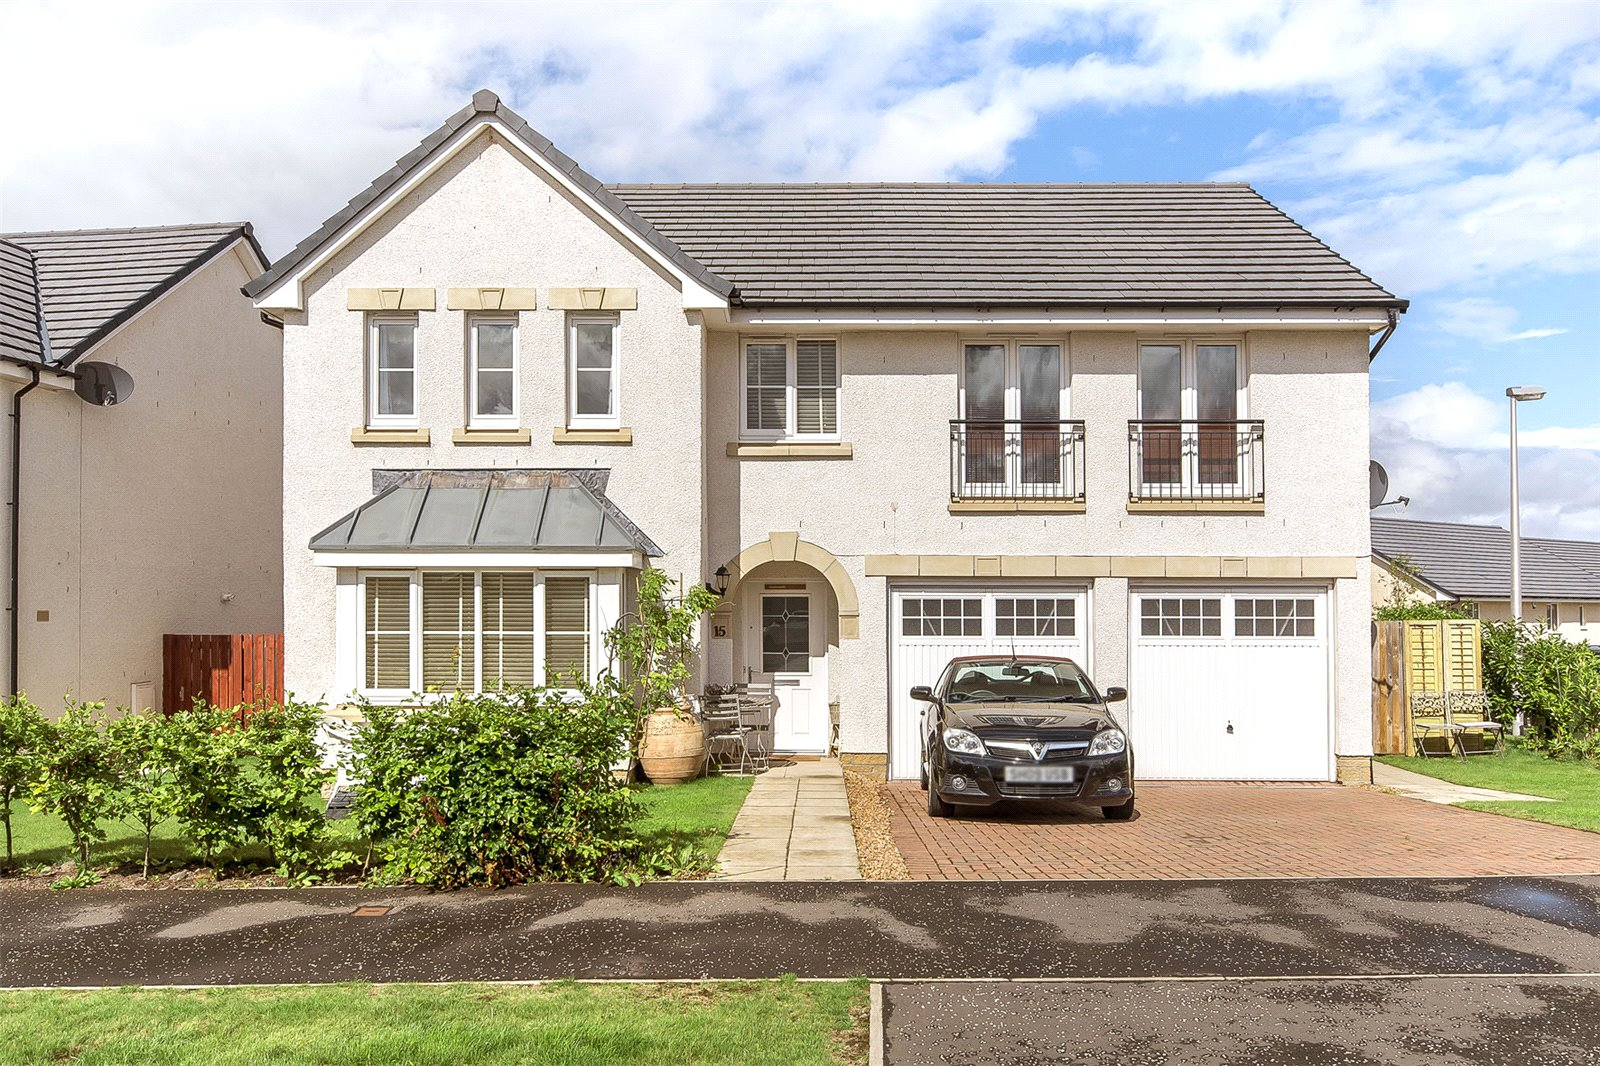 Our latest properties for sale and to let (24th August 2018)